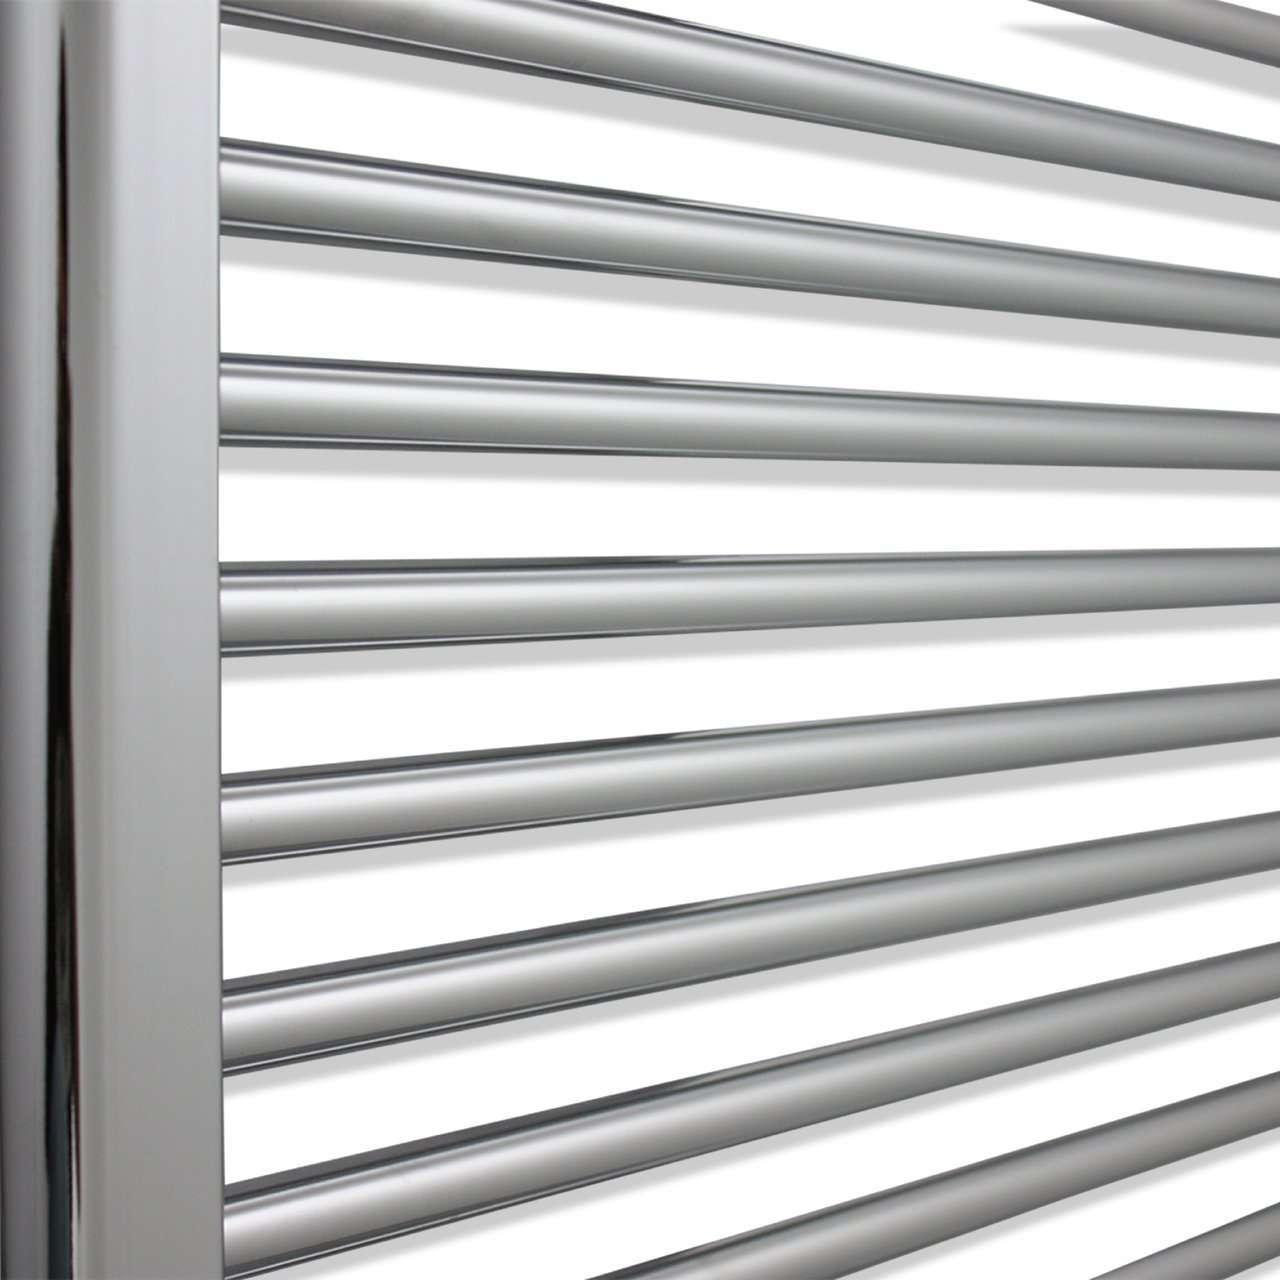 750mm Wide 1000mm High Curved Chrome Heated Towel Rail Radiator HTR